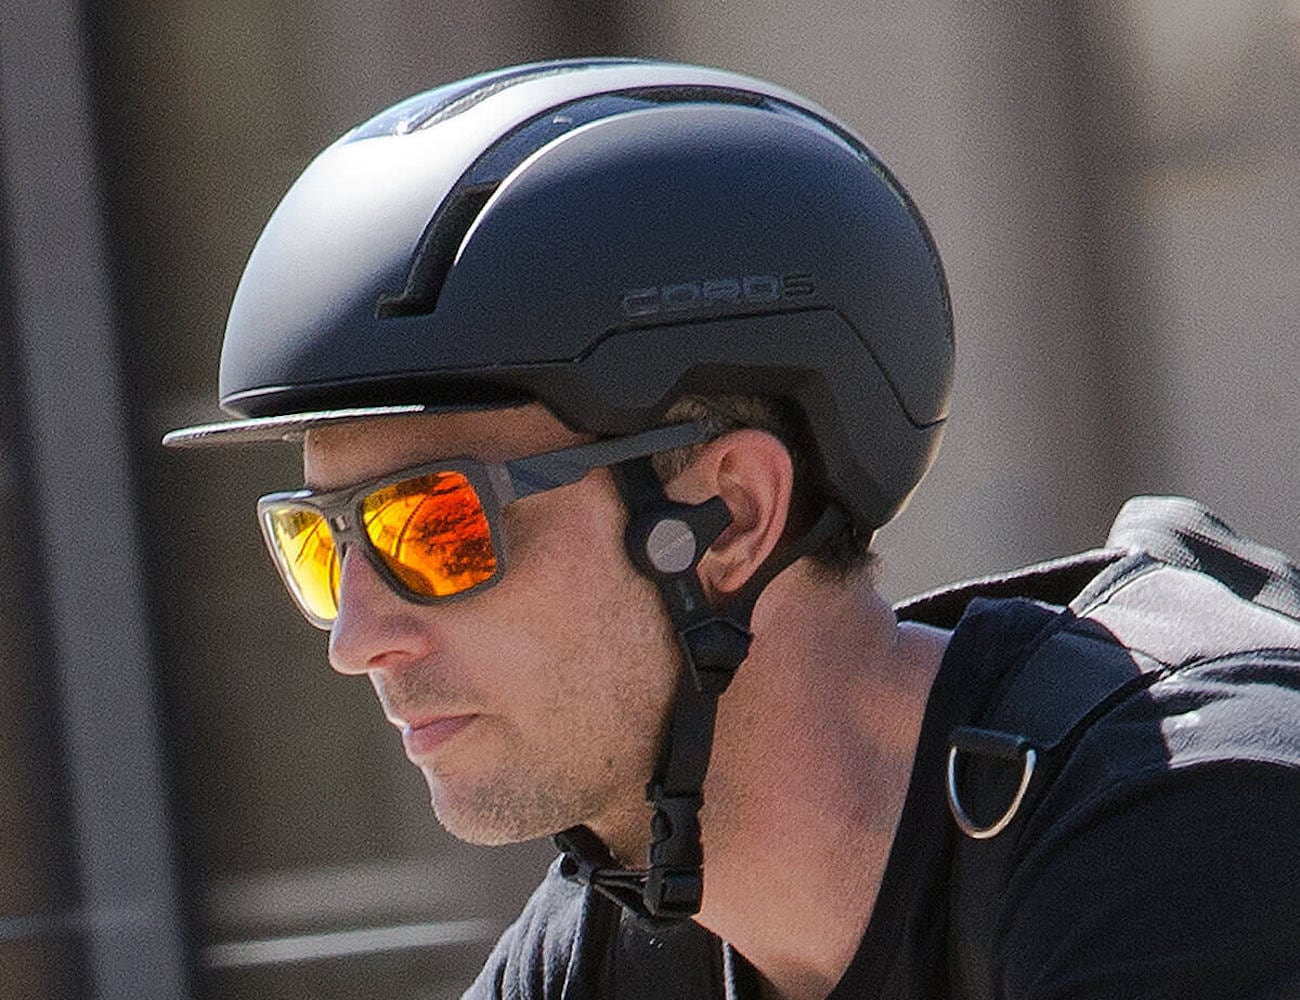 COROS SafeSound Urban Smart Cycling Helmet plays music, takes calls and more